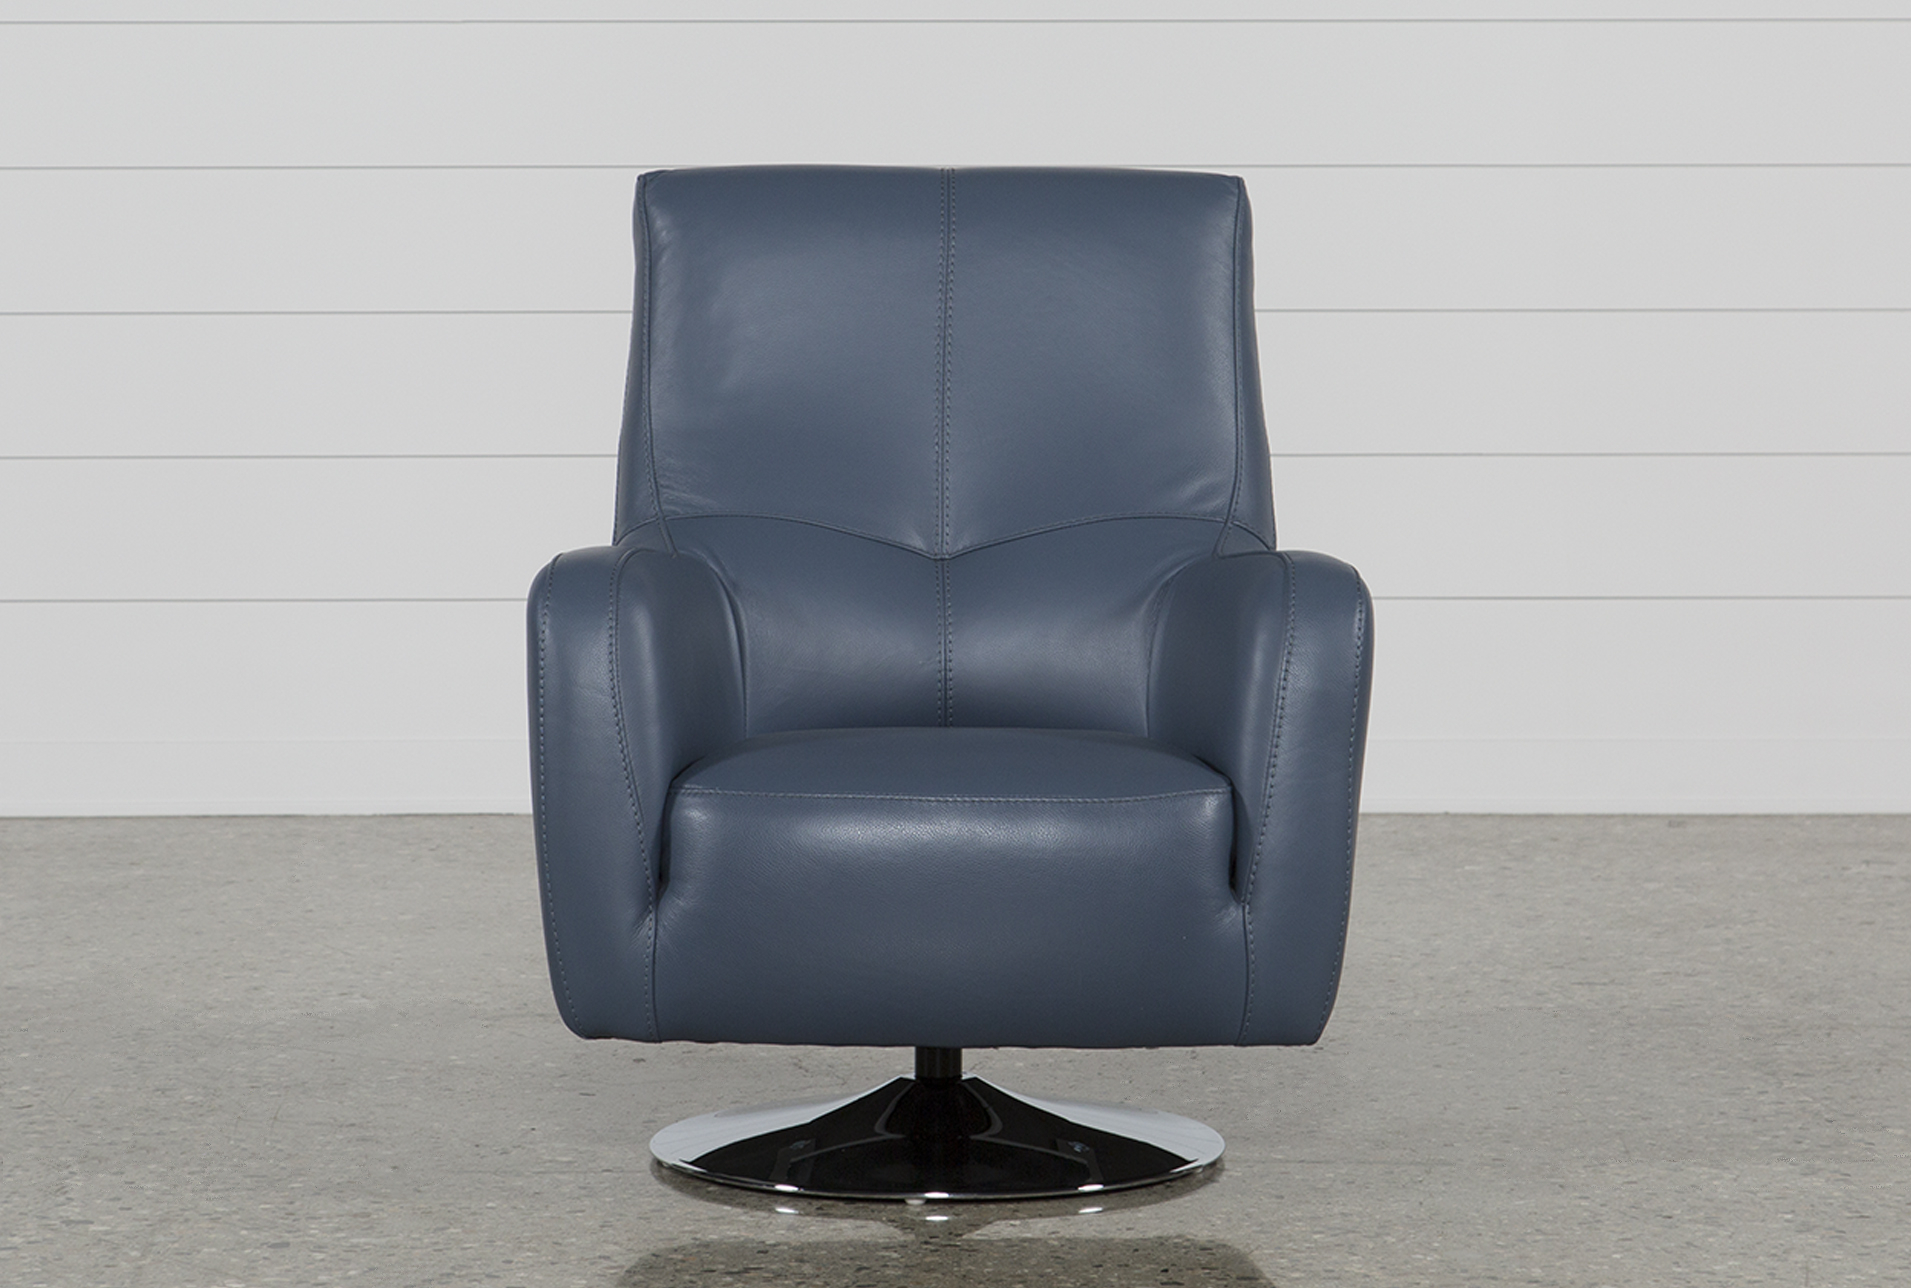 Kawai Leather Swivel Chair | Products | Pinterest | Leather Swivel Within Kawai Leather Swivel Chairs (View 2 of 25)